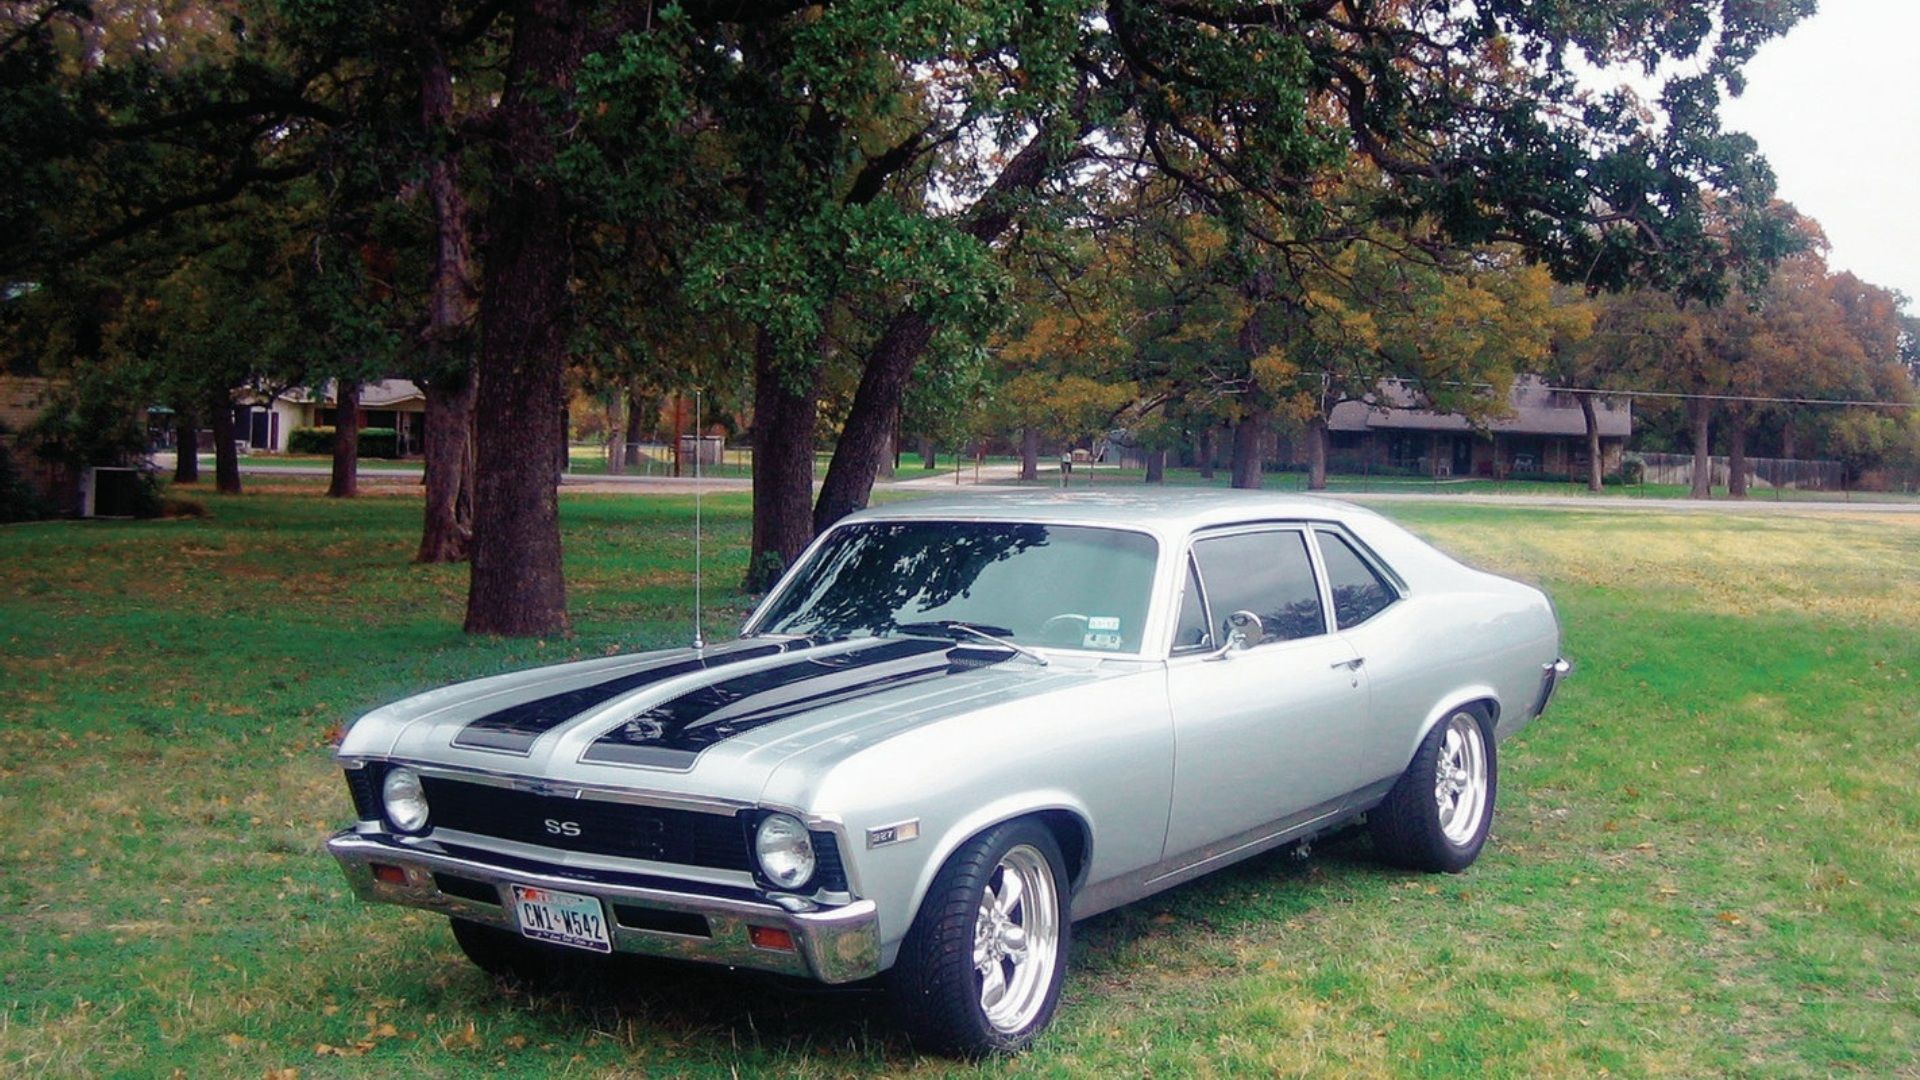 1968 Chevrolet Nova Ss Dad Had One Of These Except It Was Straight Chevy Green